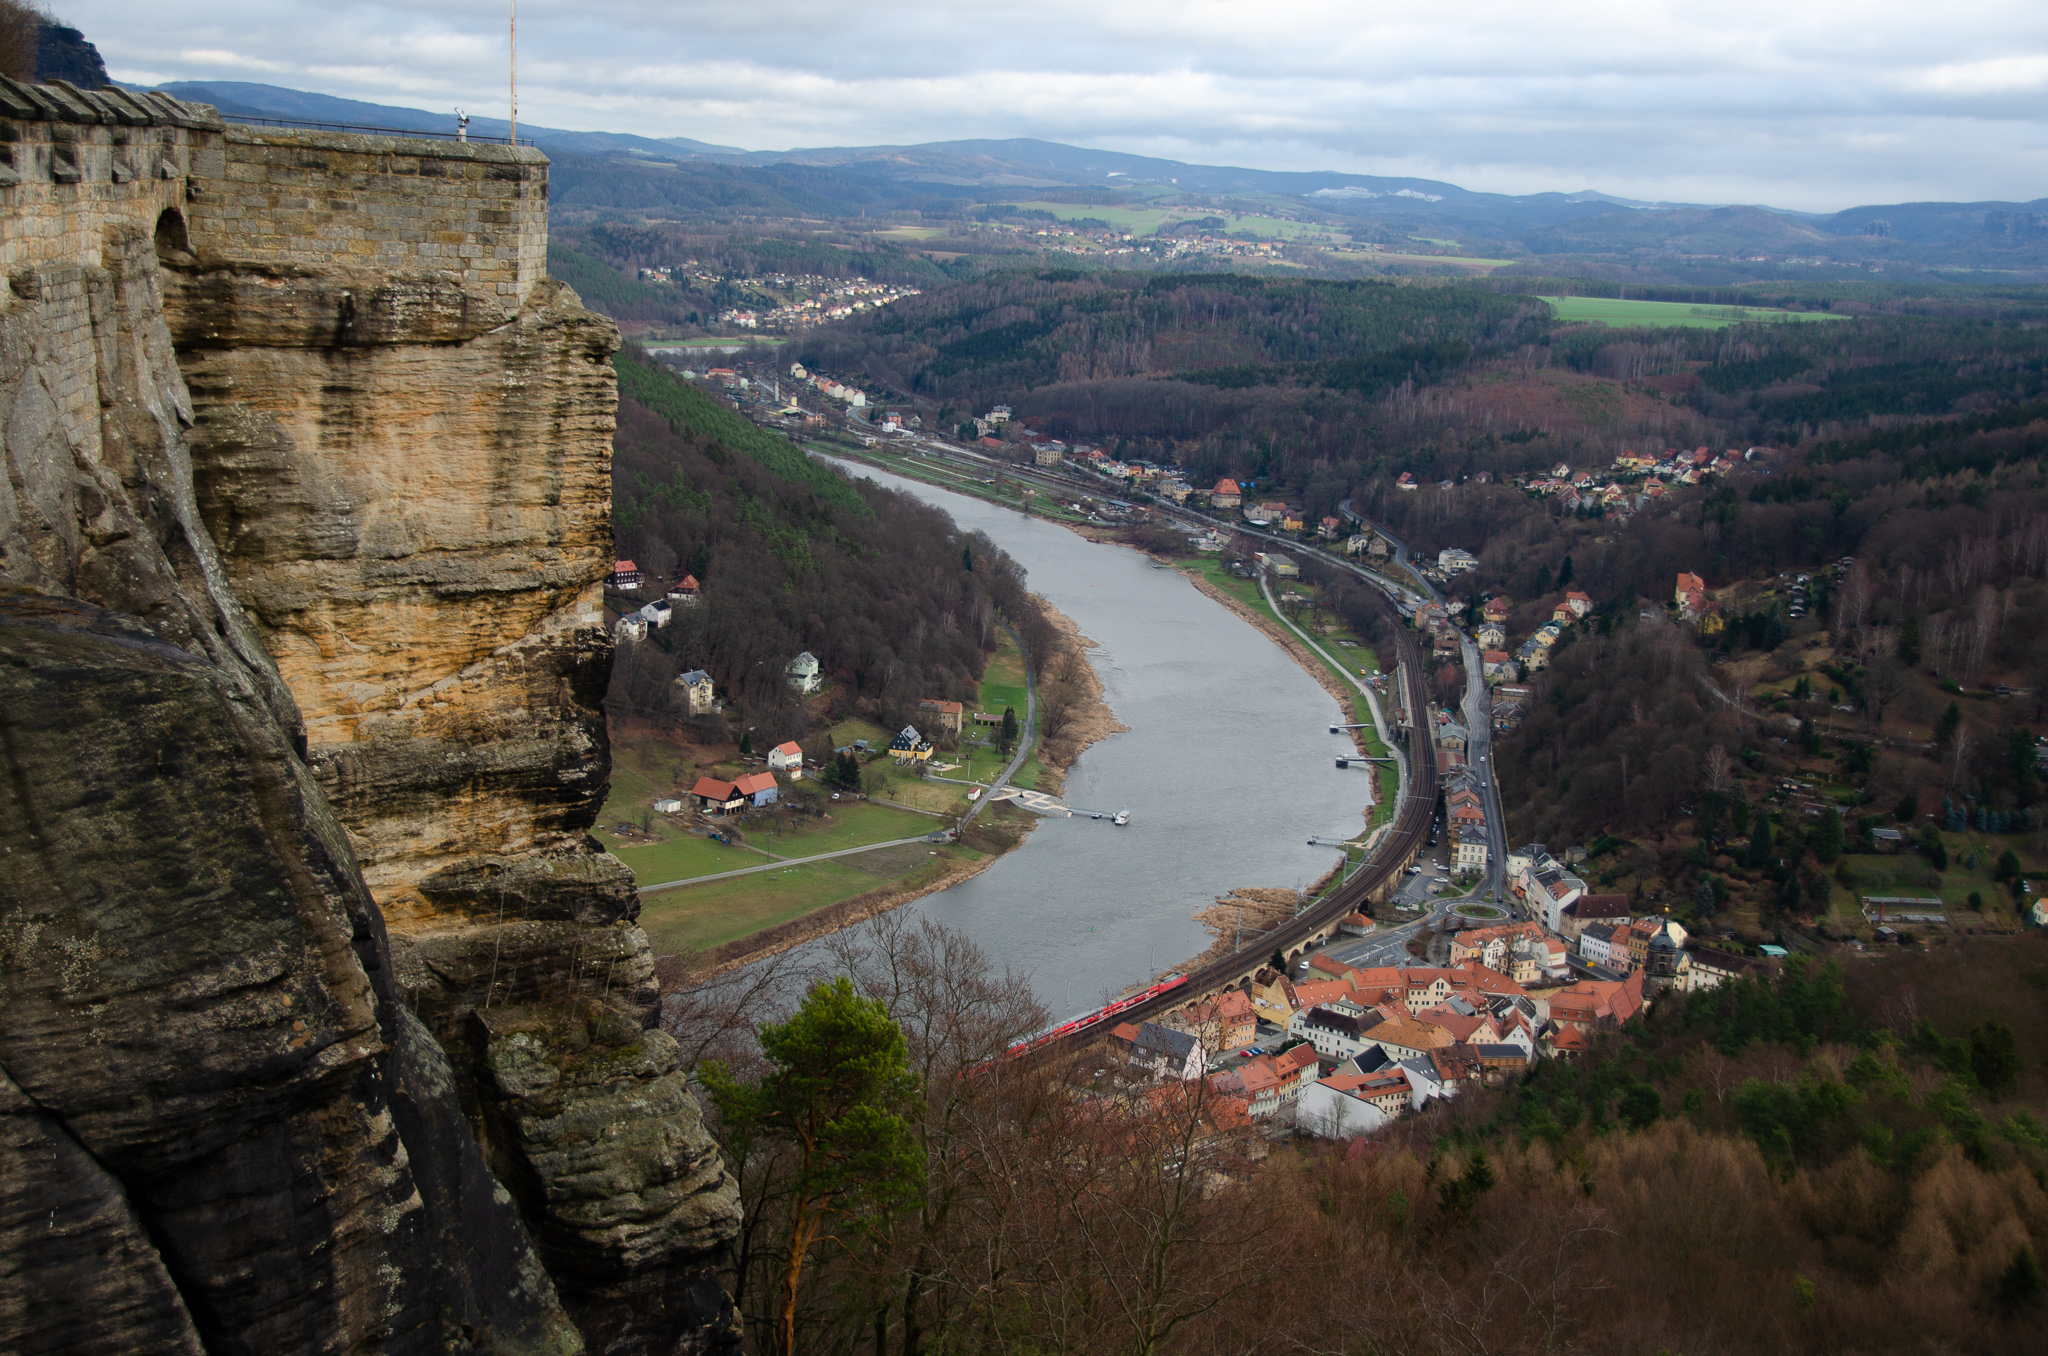 Gazing down on the town of Königstein below as the train passed by